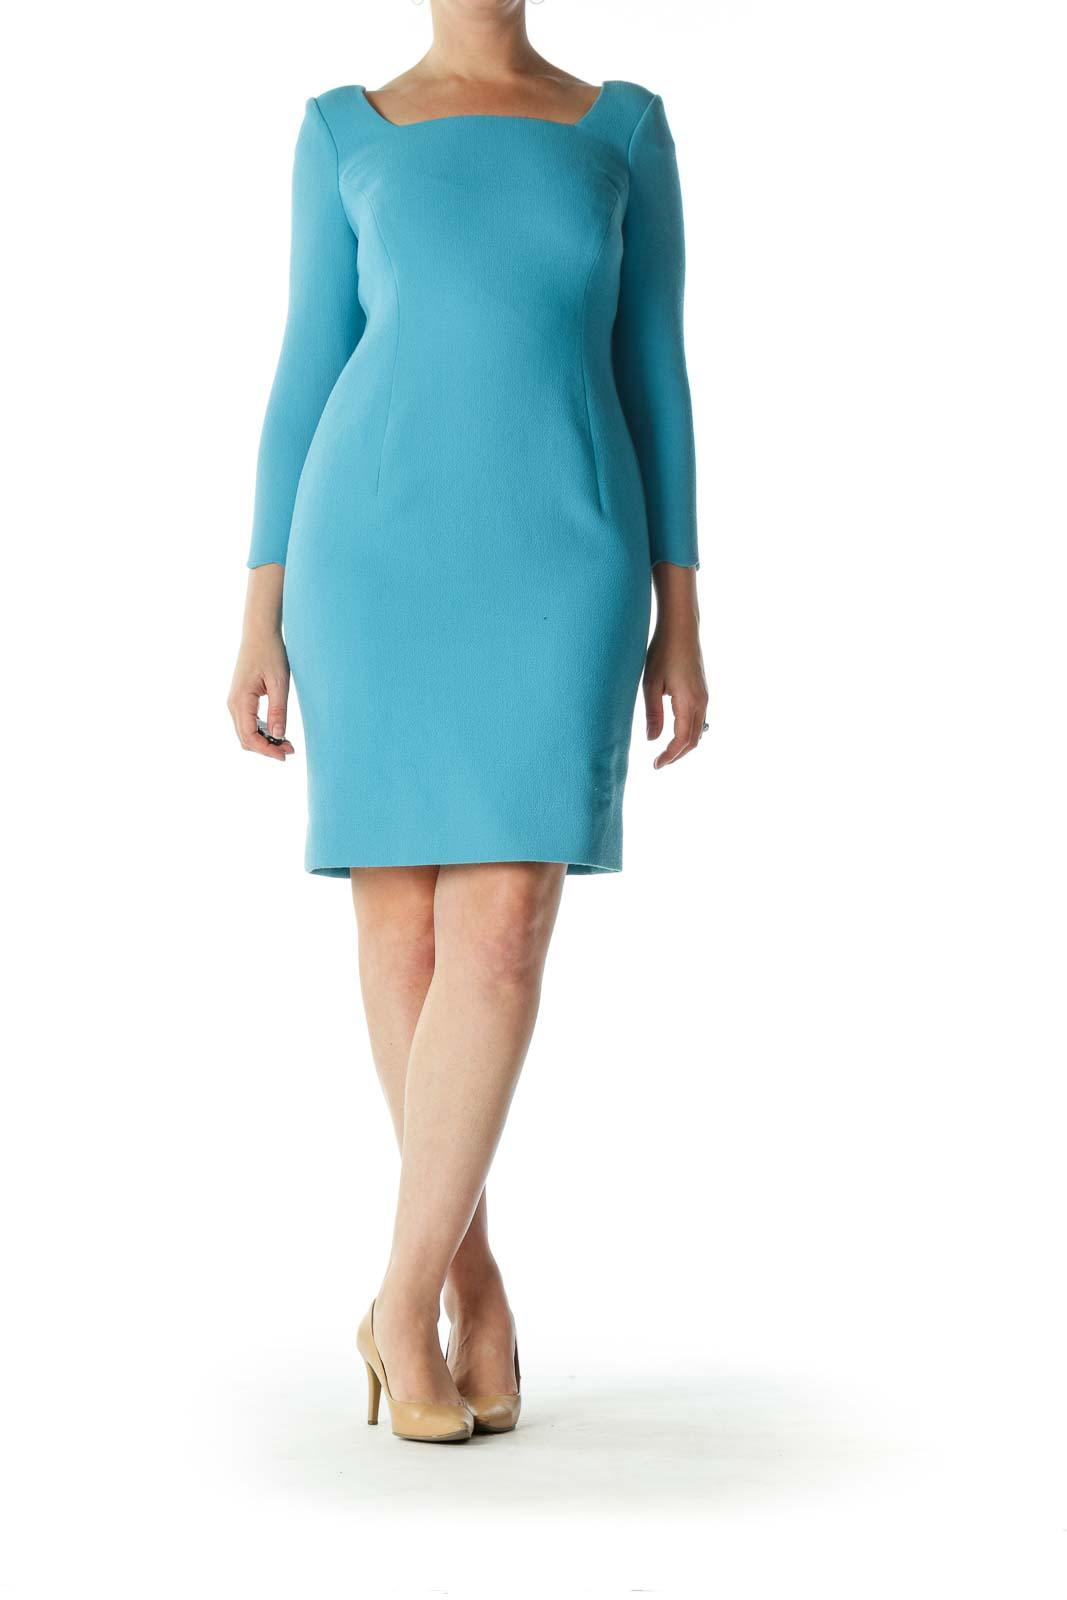 Blue Square-Neck Long-Sleeve Sleeve-Shapes Dress